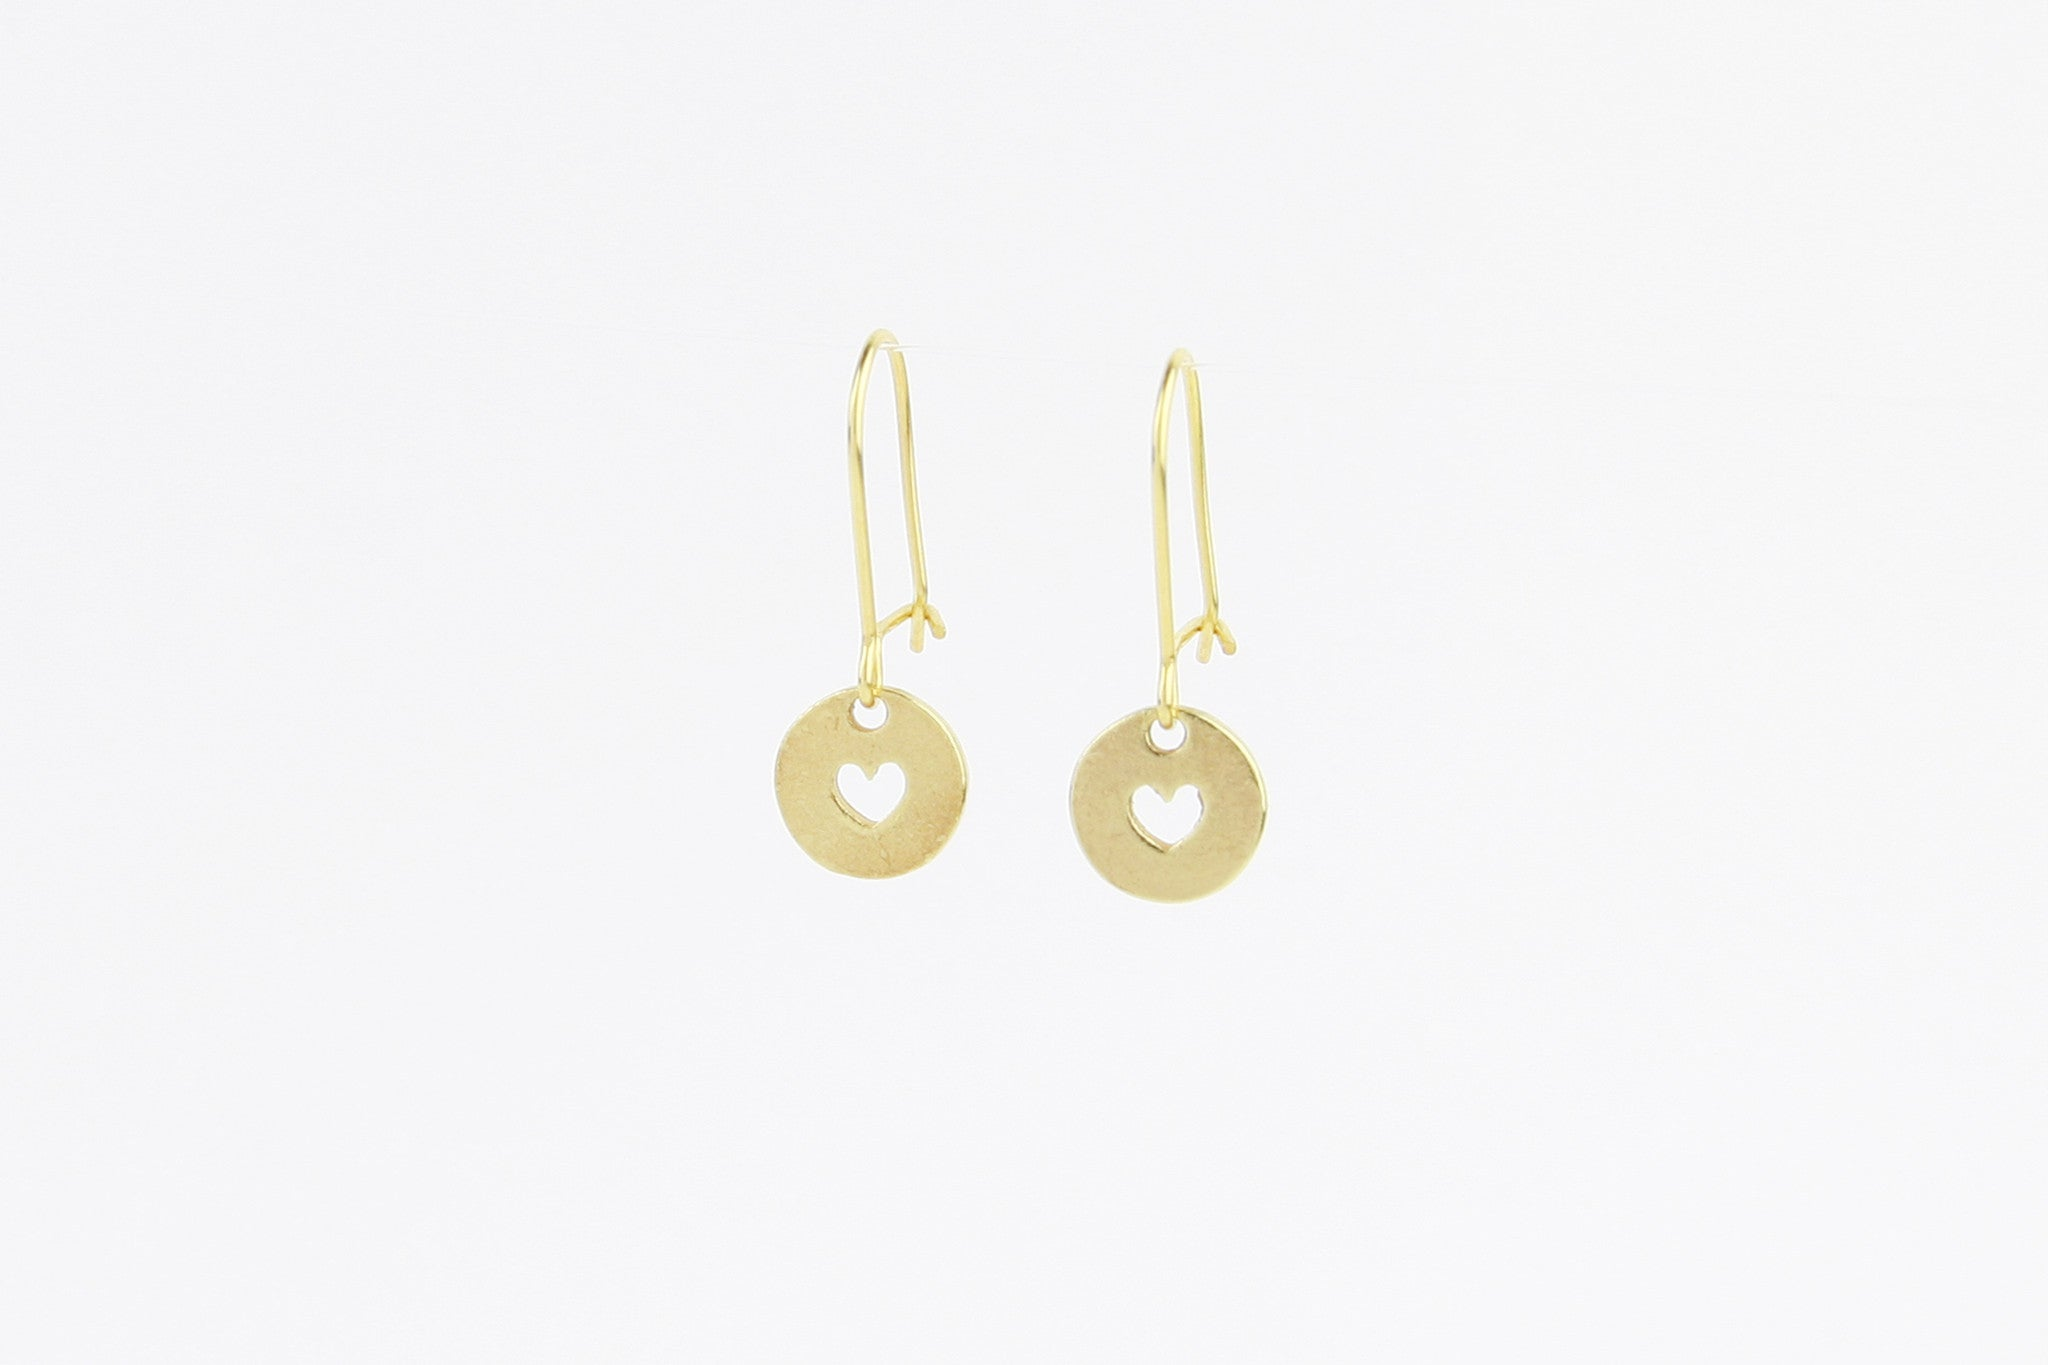 jewelberry ohrringe earrings love token yellow gold plated sterling silver fine jewelry handmade with love fairtrade